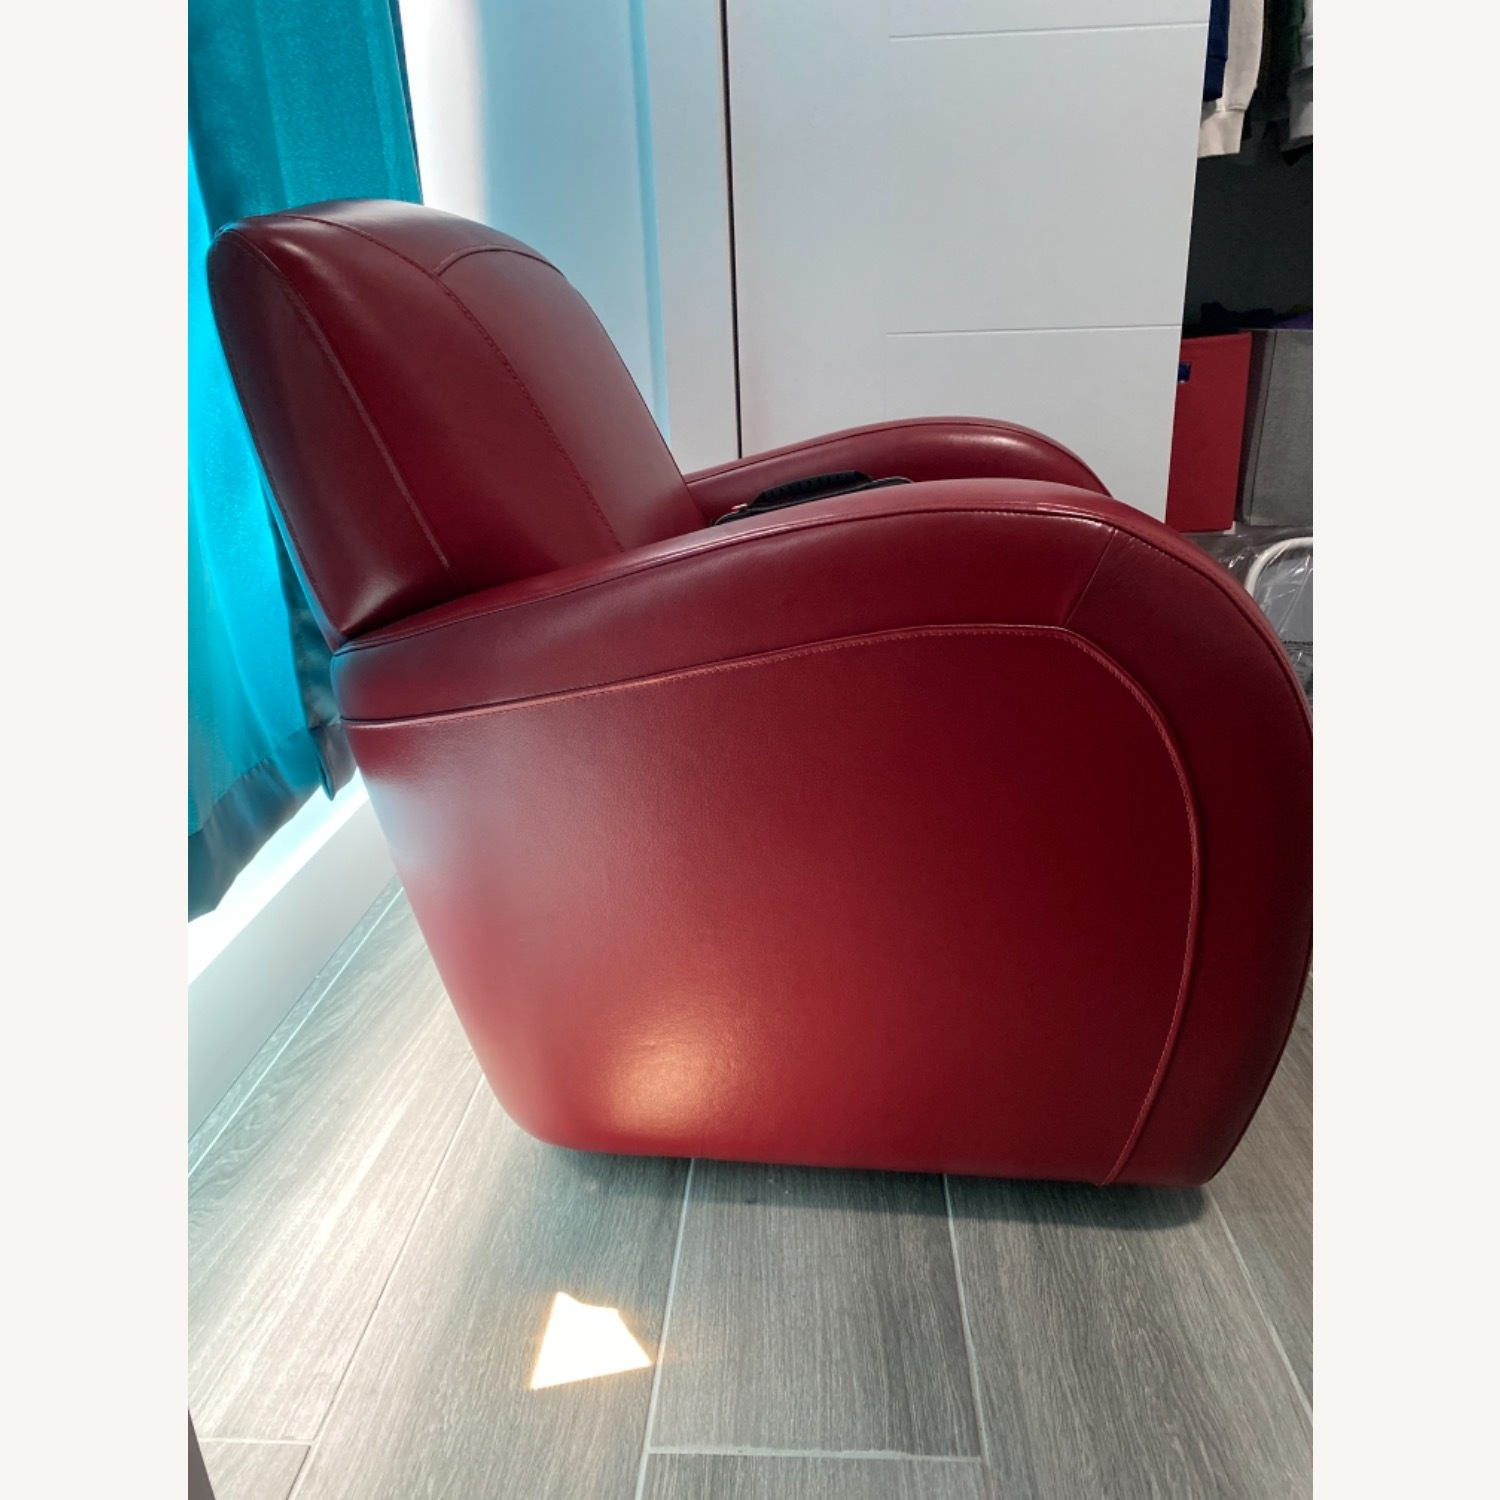 Bob's Discount Furniture Red Leather Accent Chair - image-4